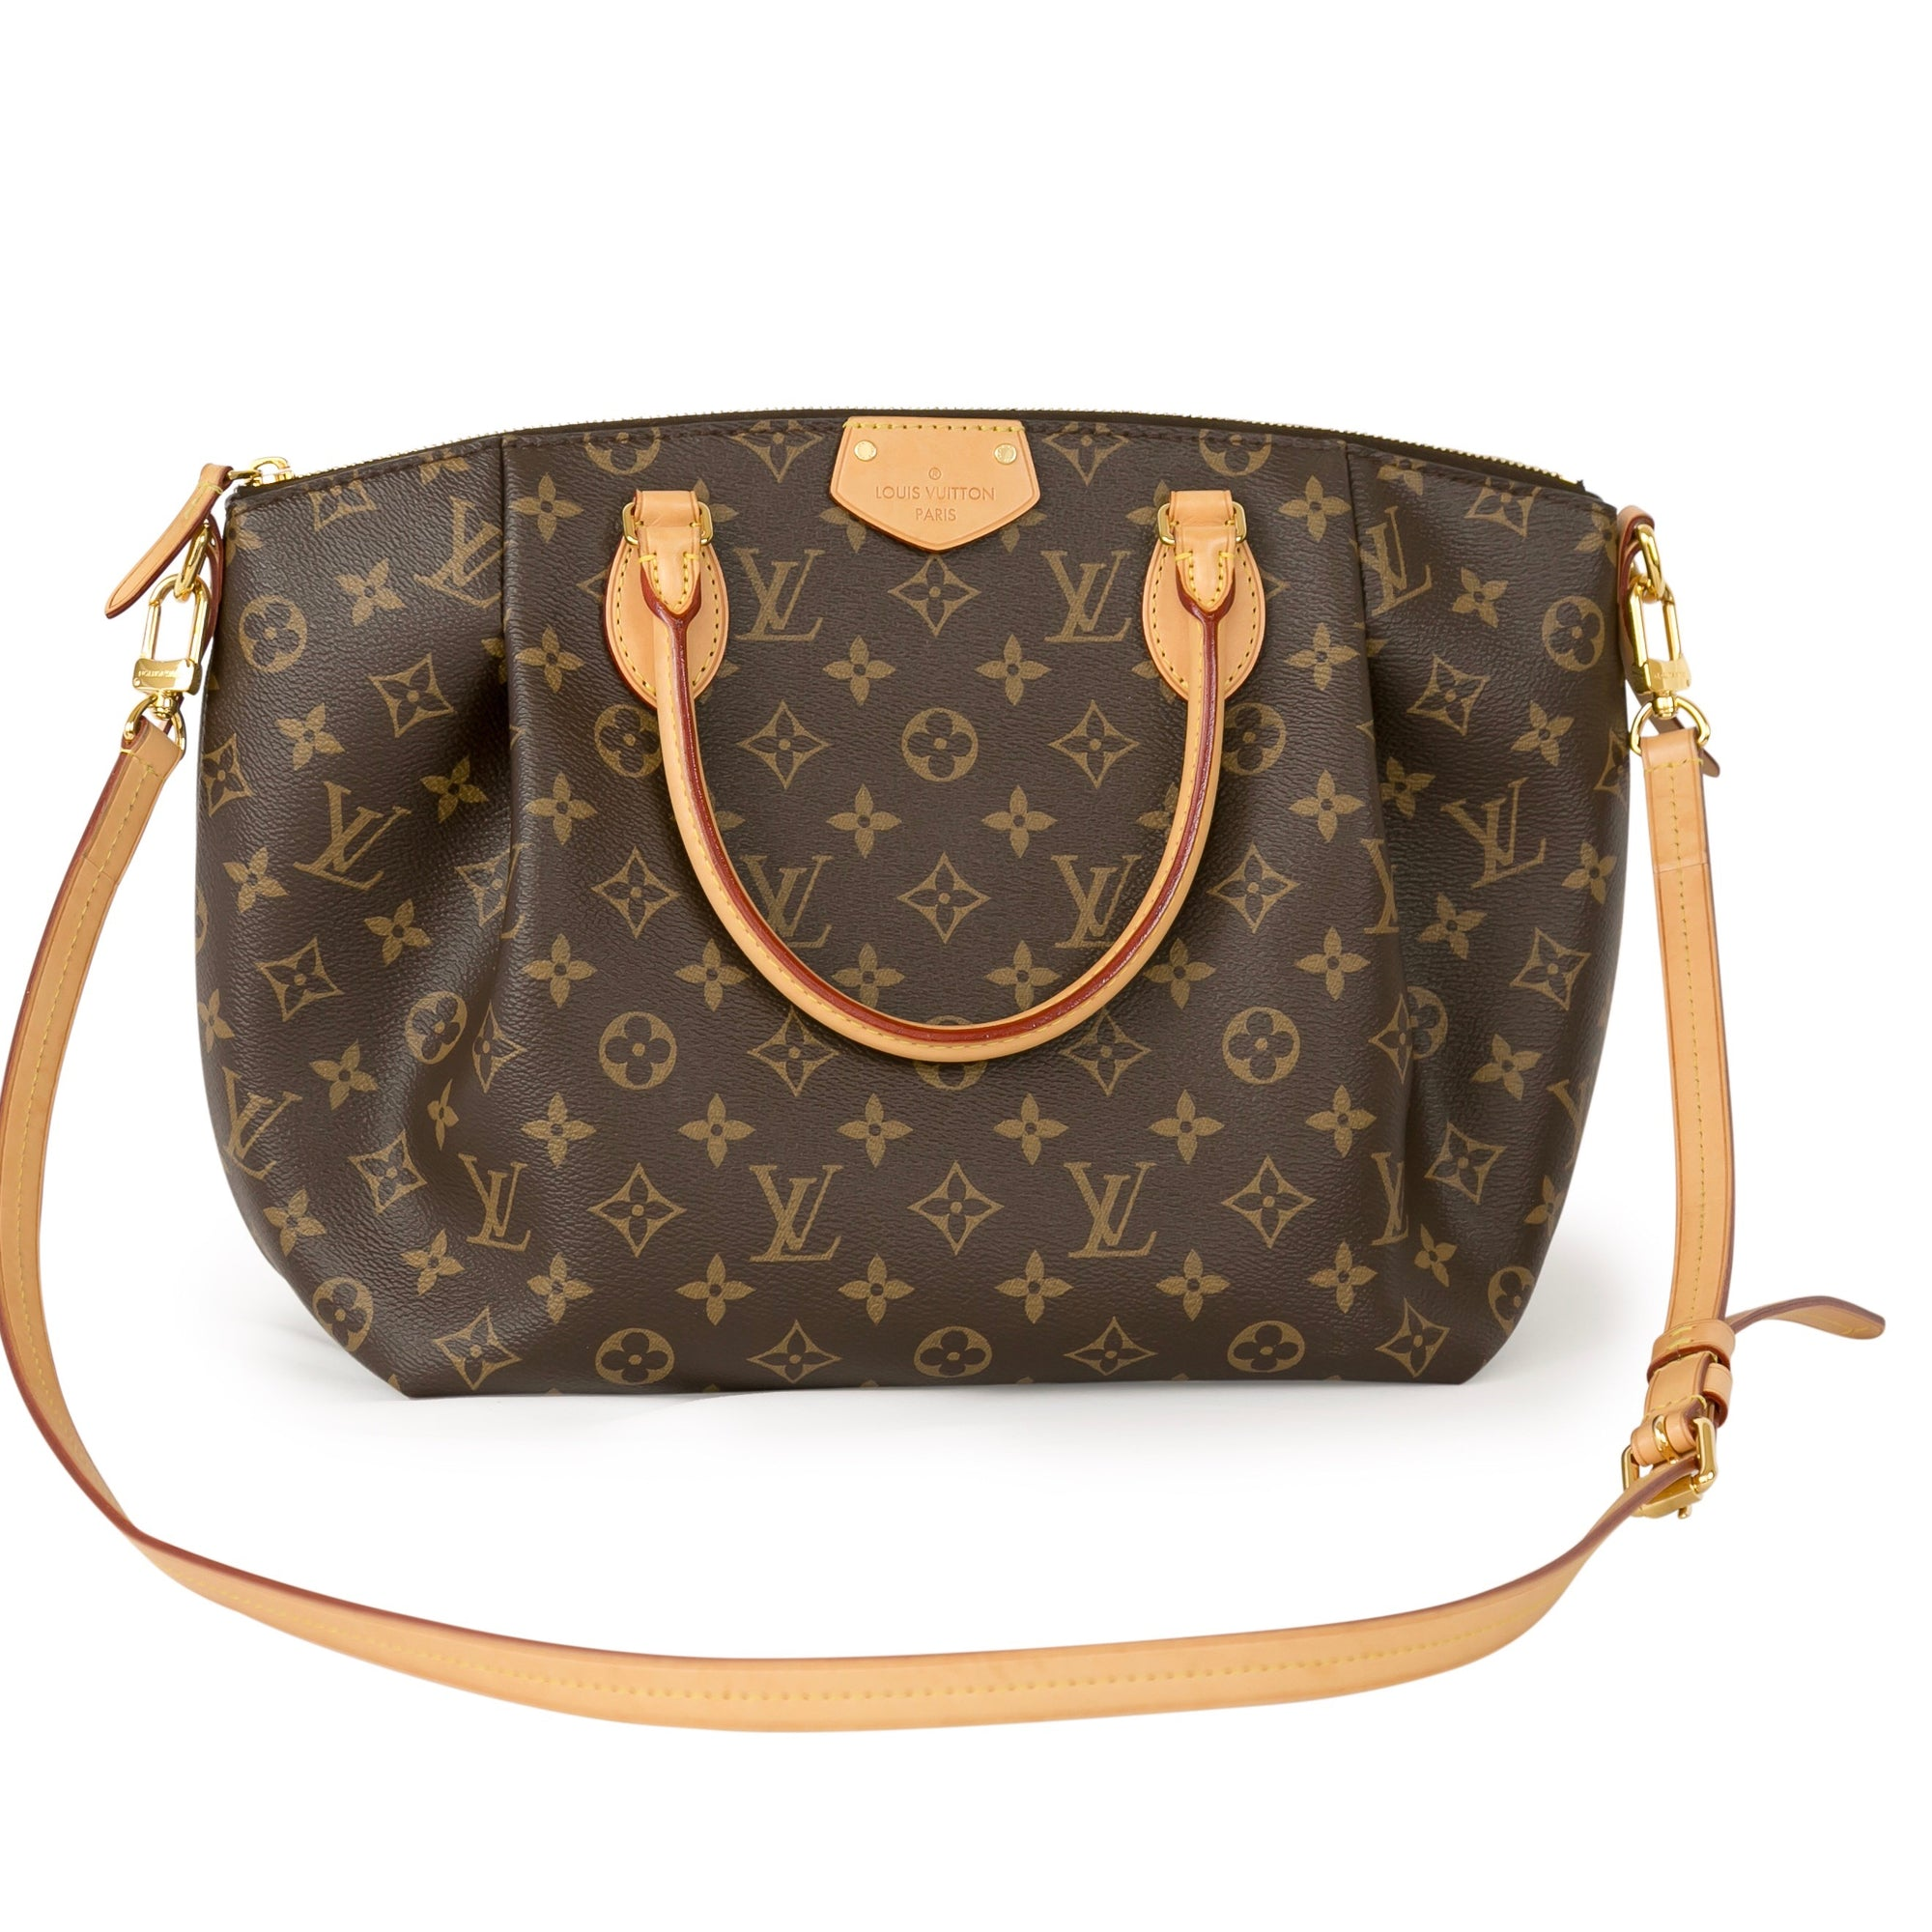 Louis Vuitton Turenne MM Monogram Bag